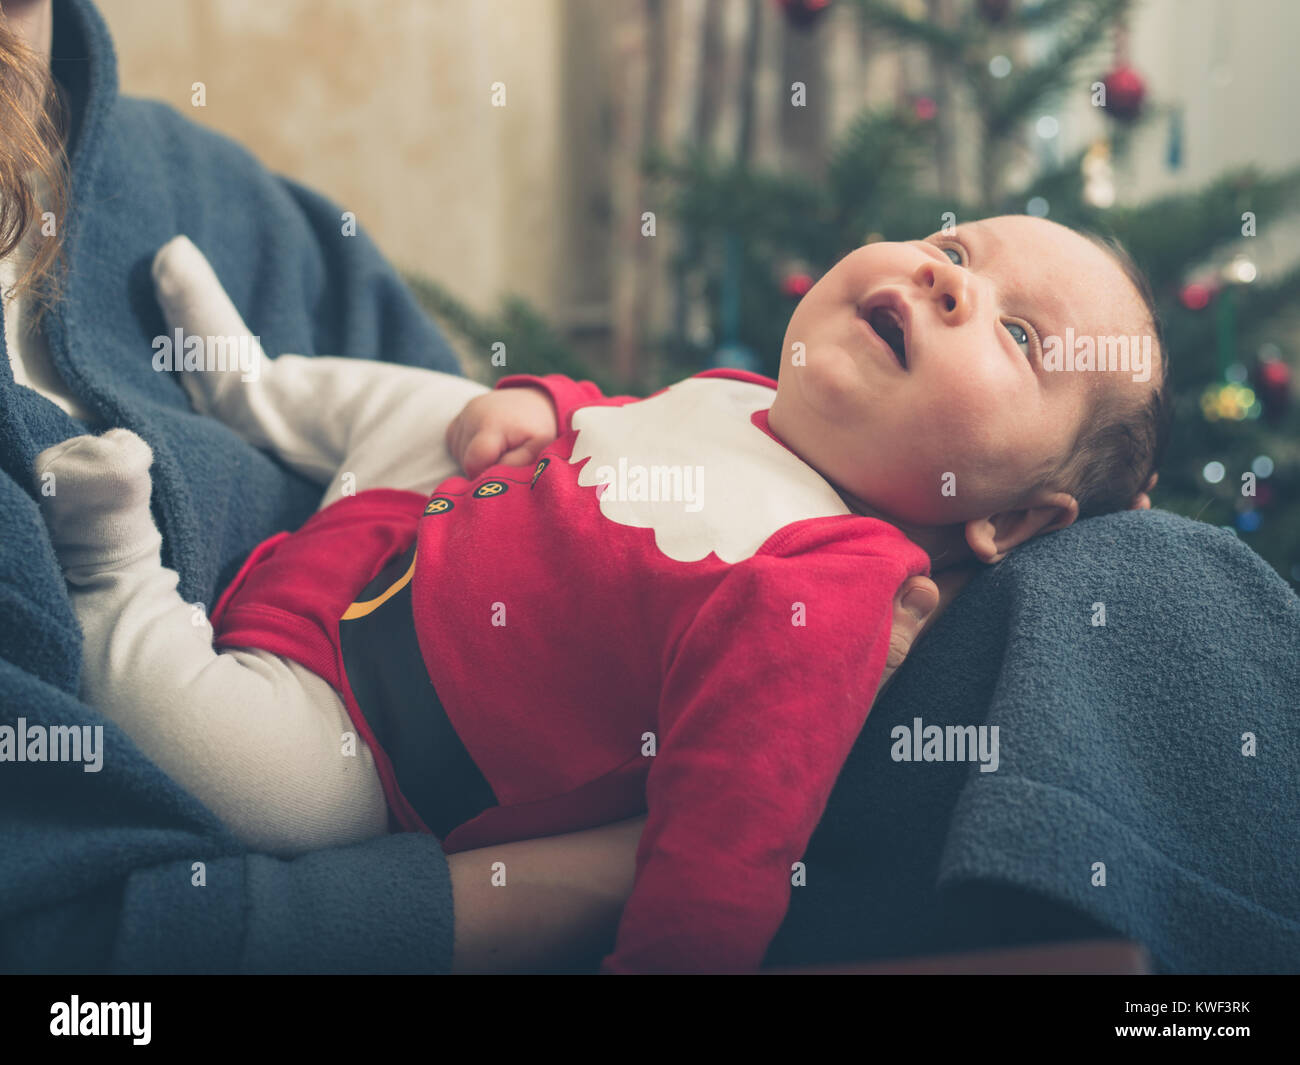 A happy baby wearing a santa outfit in front of the Christmas tree - Stock Image